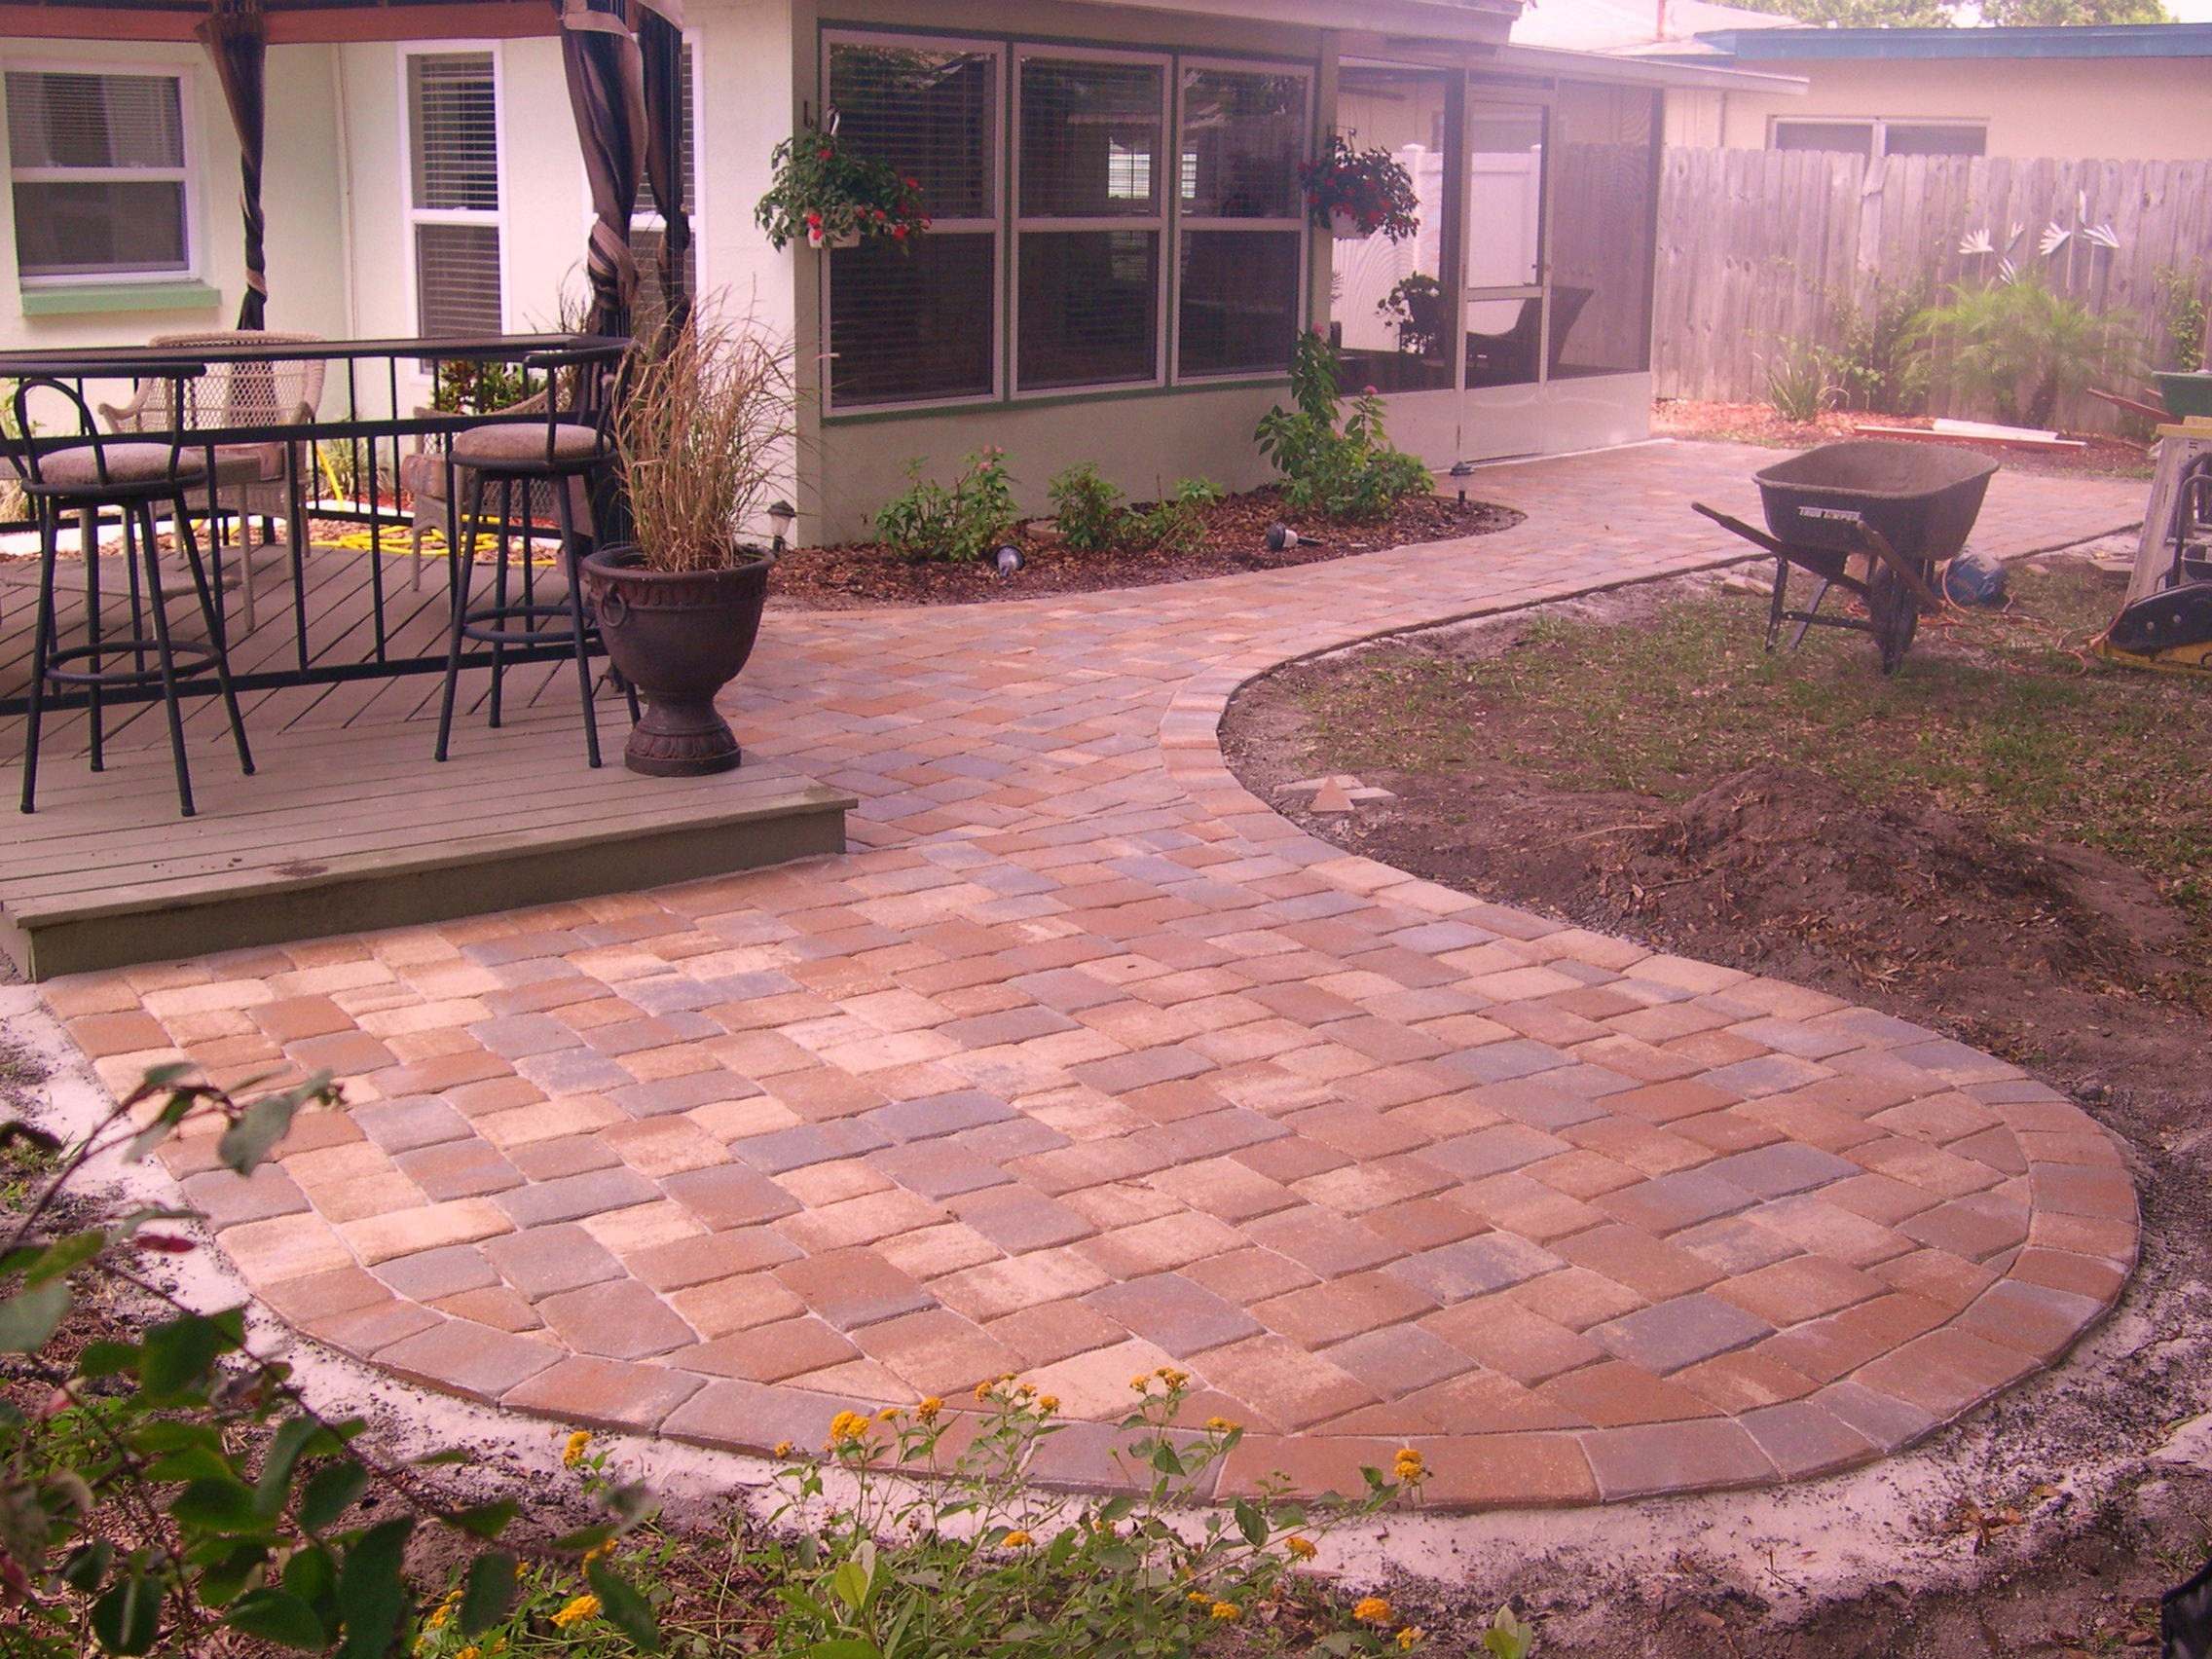 6 Backyard pavers | Sapphire Developments Inc on Yard Paver Ideas  id=53892